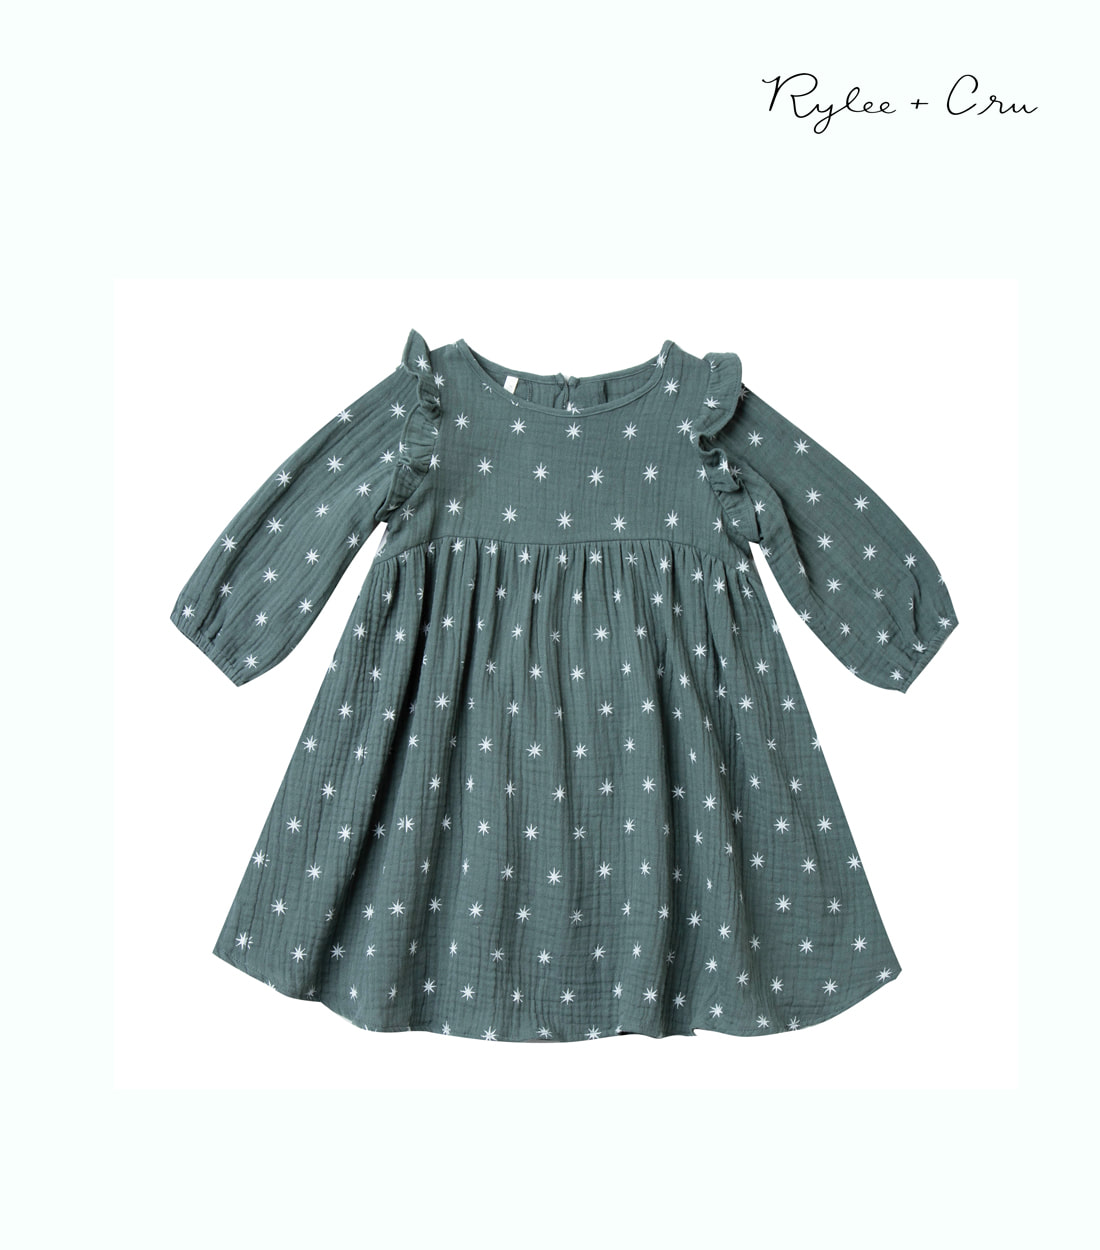 라일리앤크루 STAR PIPER DRESS / SPRUCE